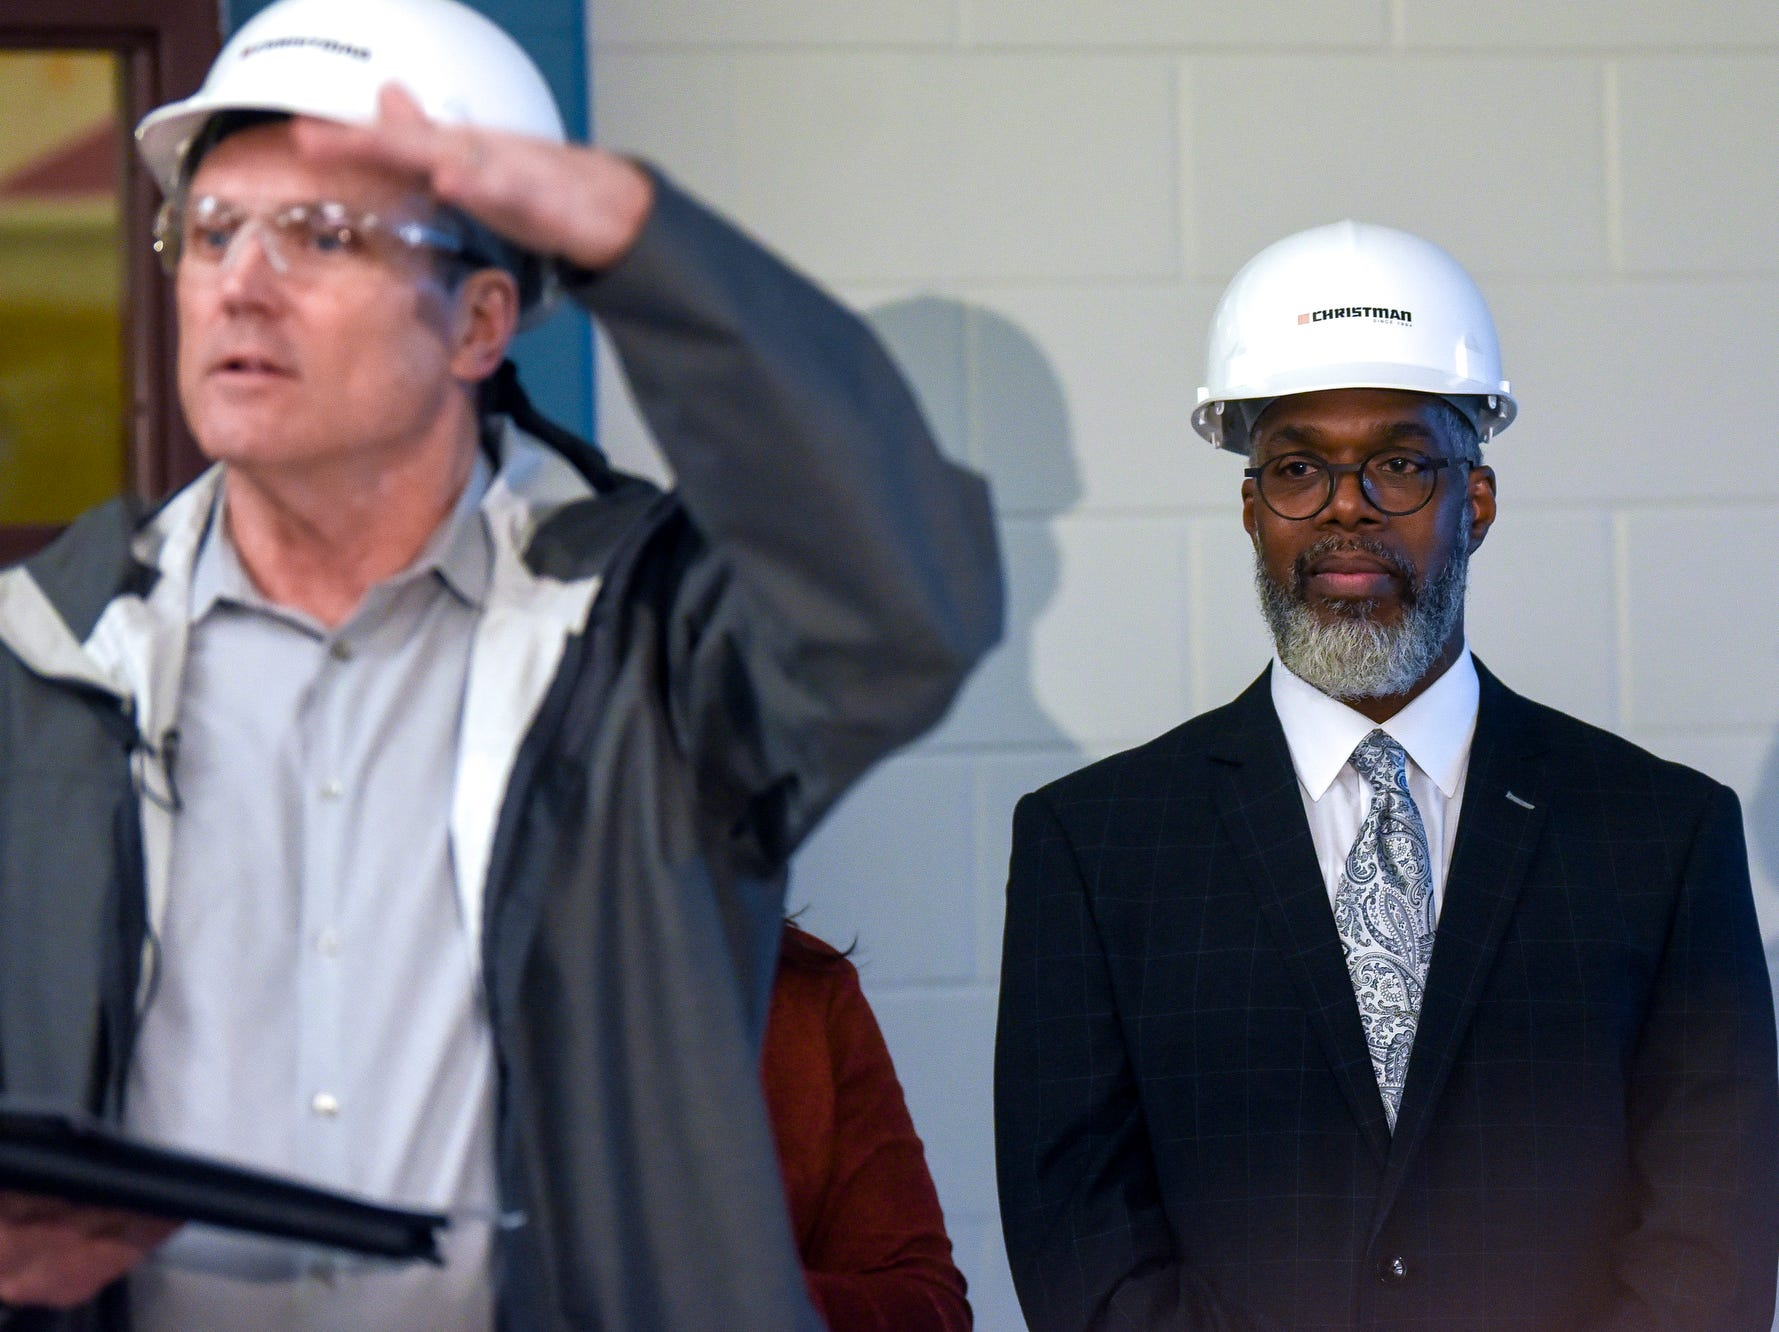 Eastern High School Marcelle Carruthers looks on during a tour of the construction of the new Eastern High School on Thursday, March 14, 2019, in Lansing. The project is being funded by the district's successful Pathway Promise millage, which was passed by voters in 2016. The building was formerly Pattengill Academy.